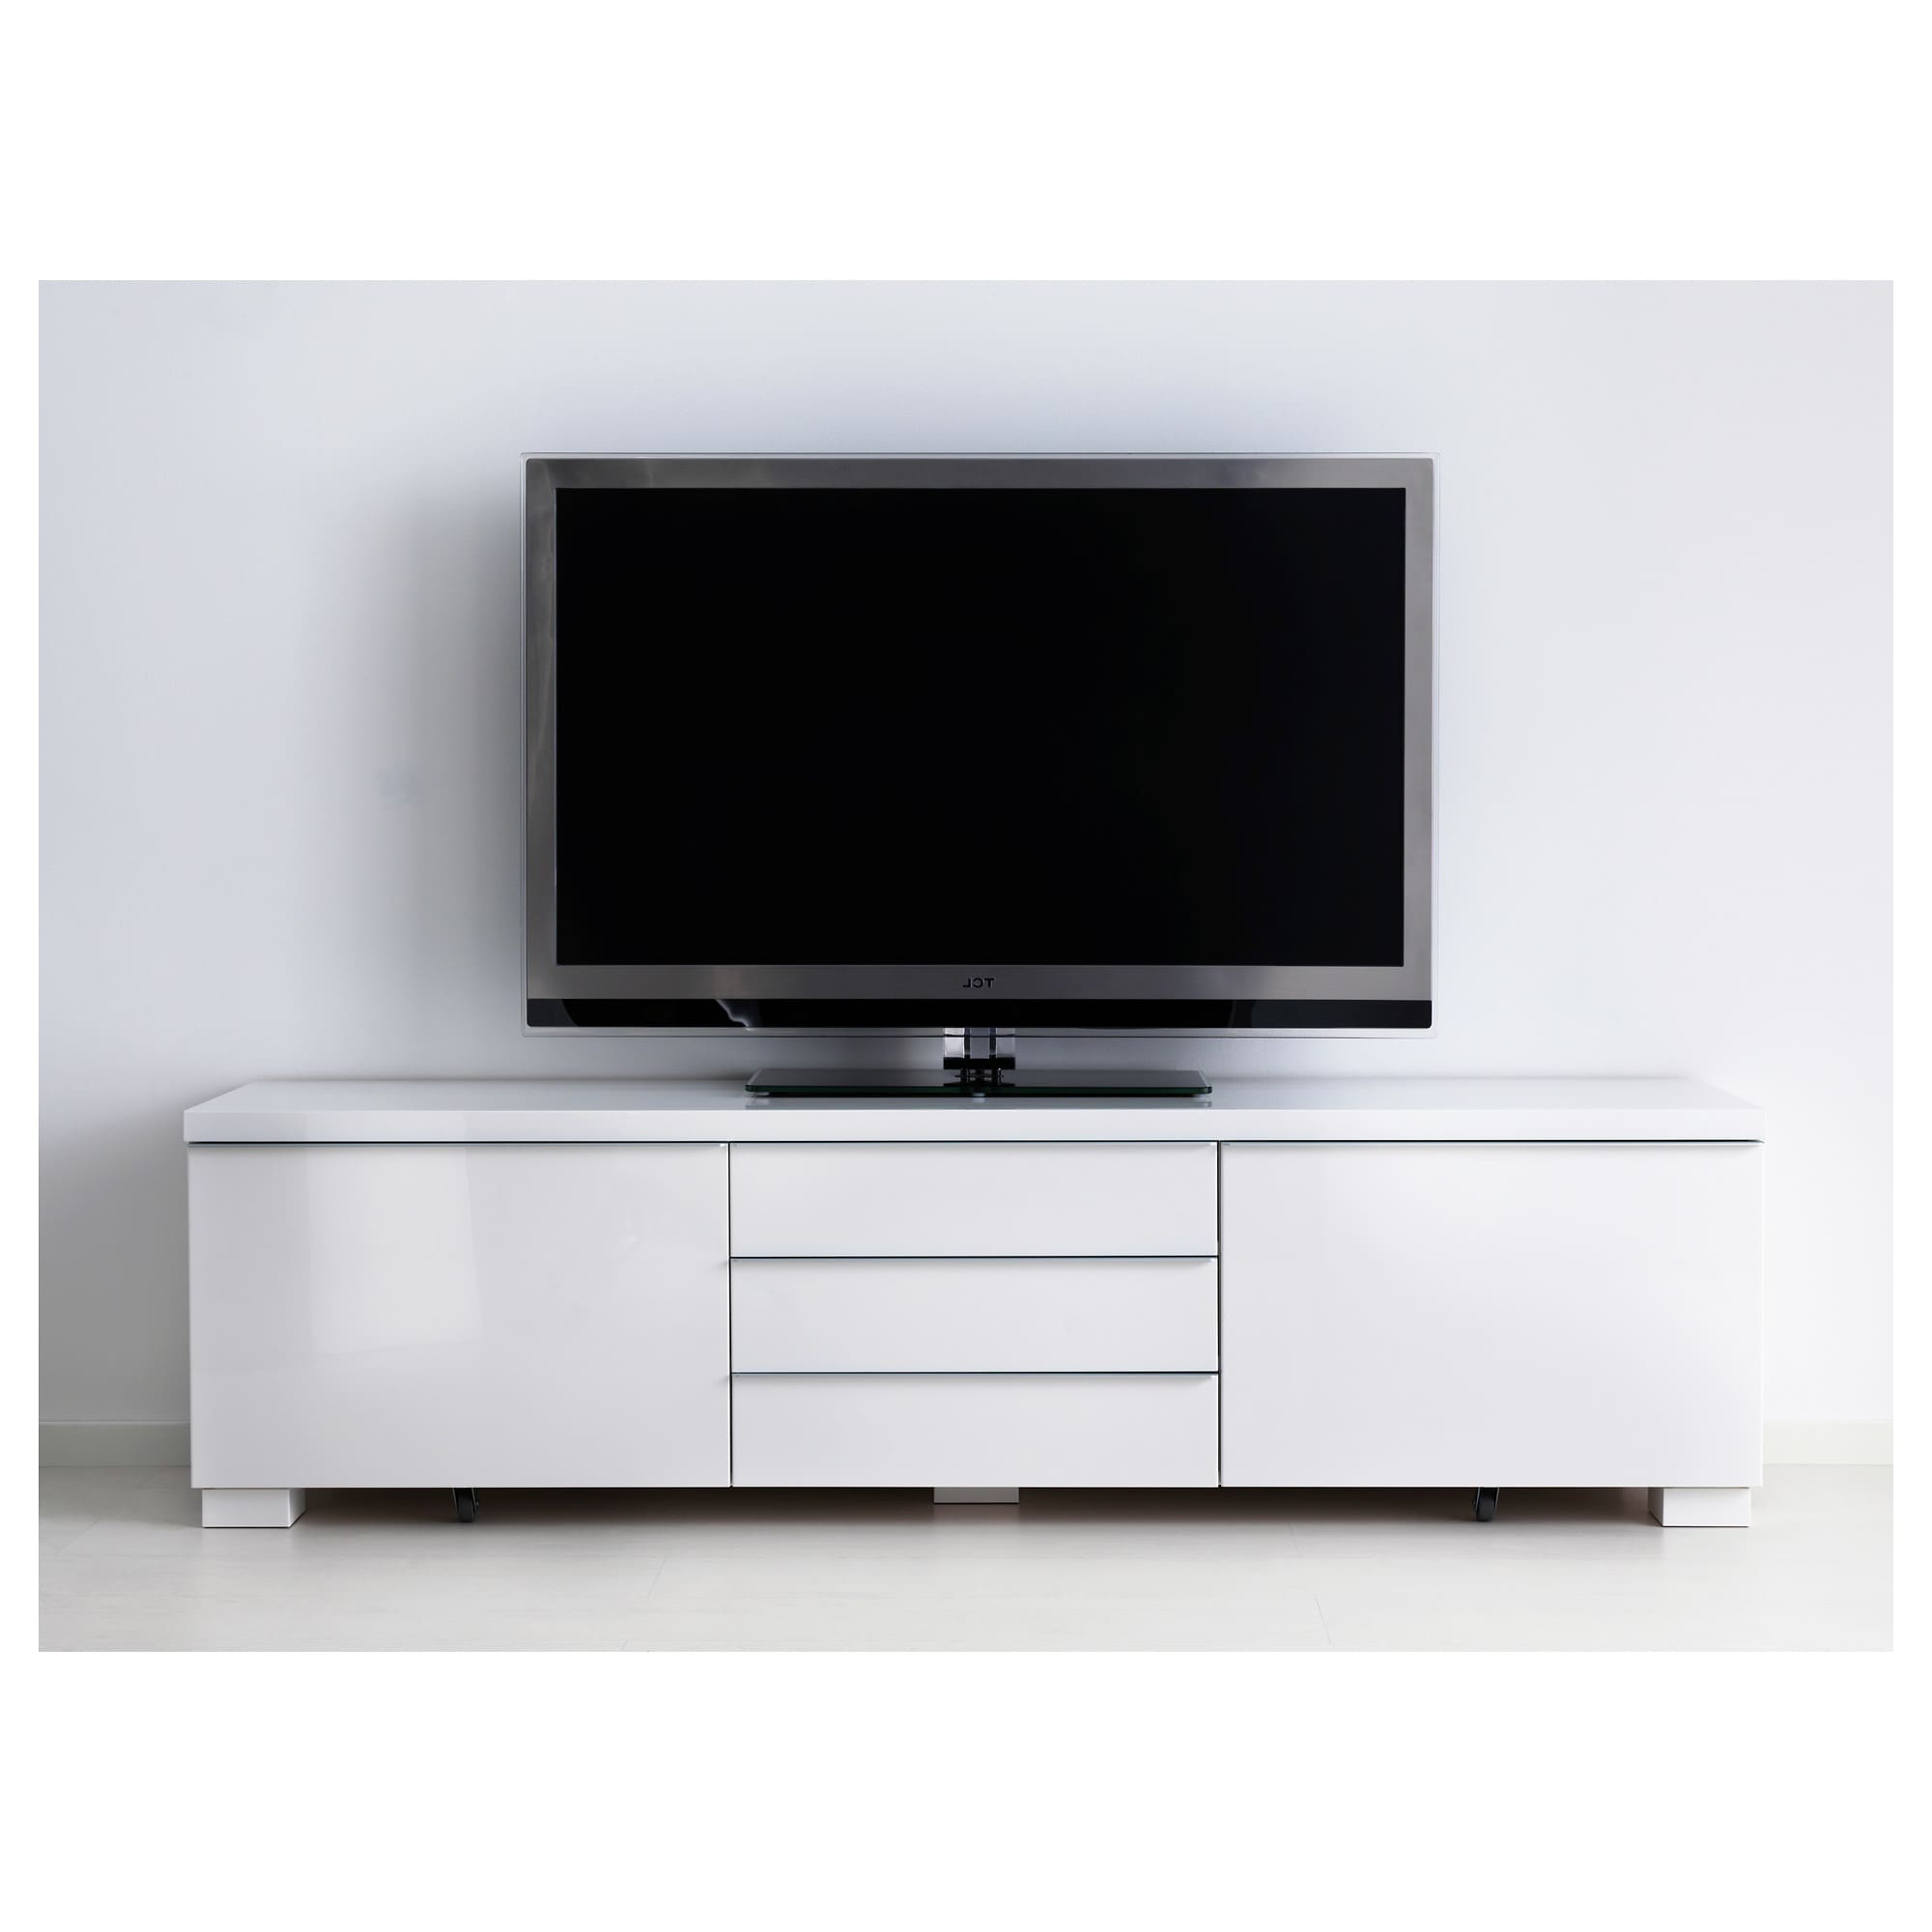 Most Recent Bestå Burs Tv Bench High Gloss White 180 X 41 X 49 Cm – Ikea Pertaining To White Gloss Tv Benches (Gallery 1 of 20)